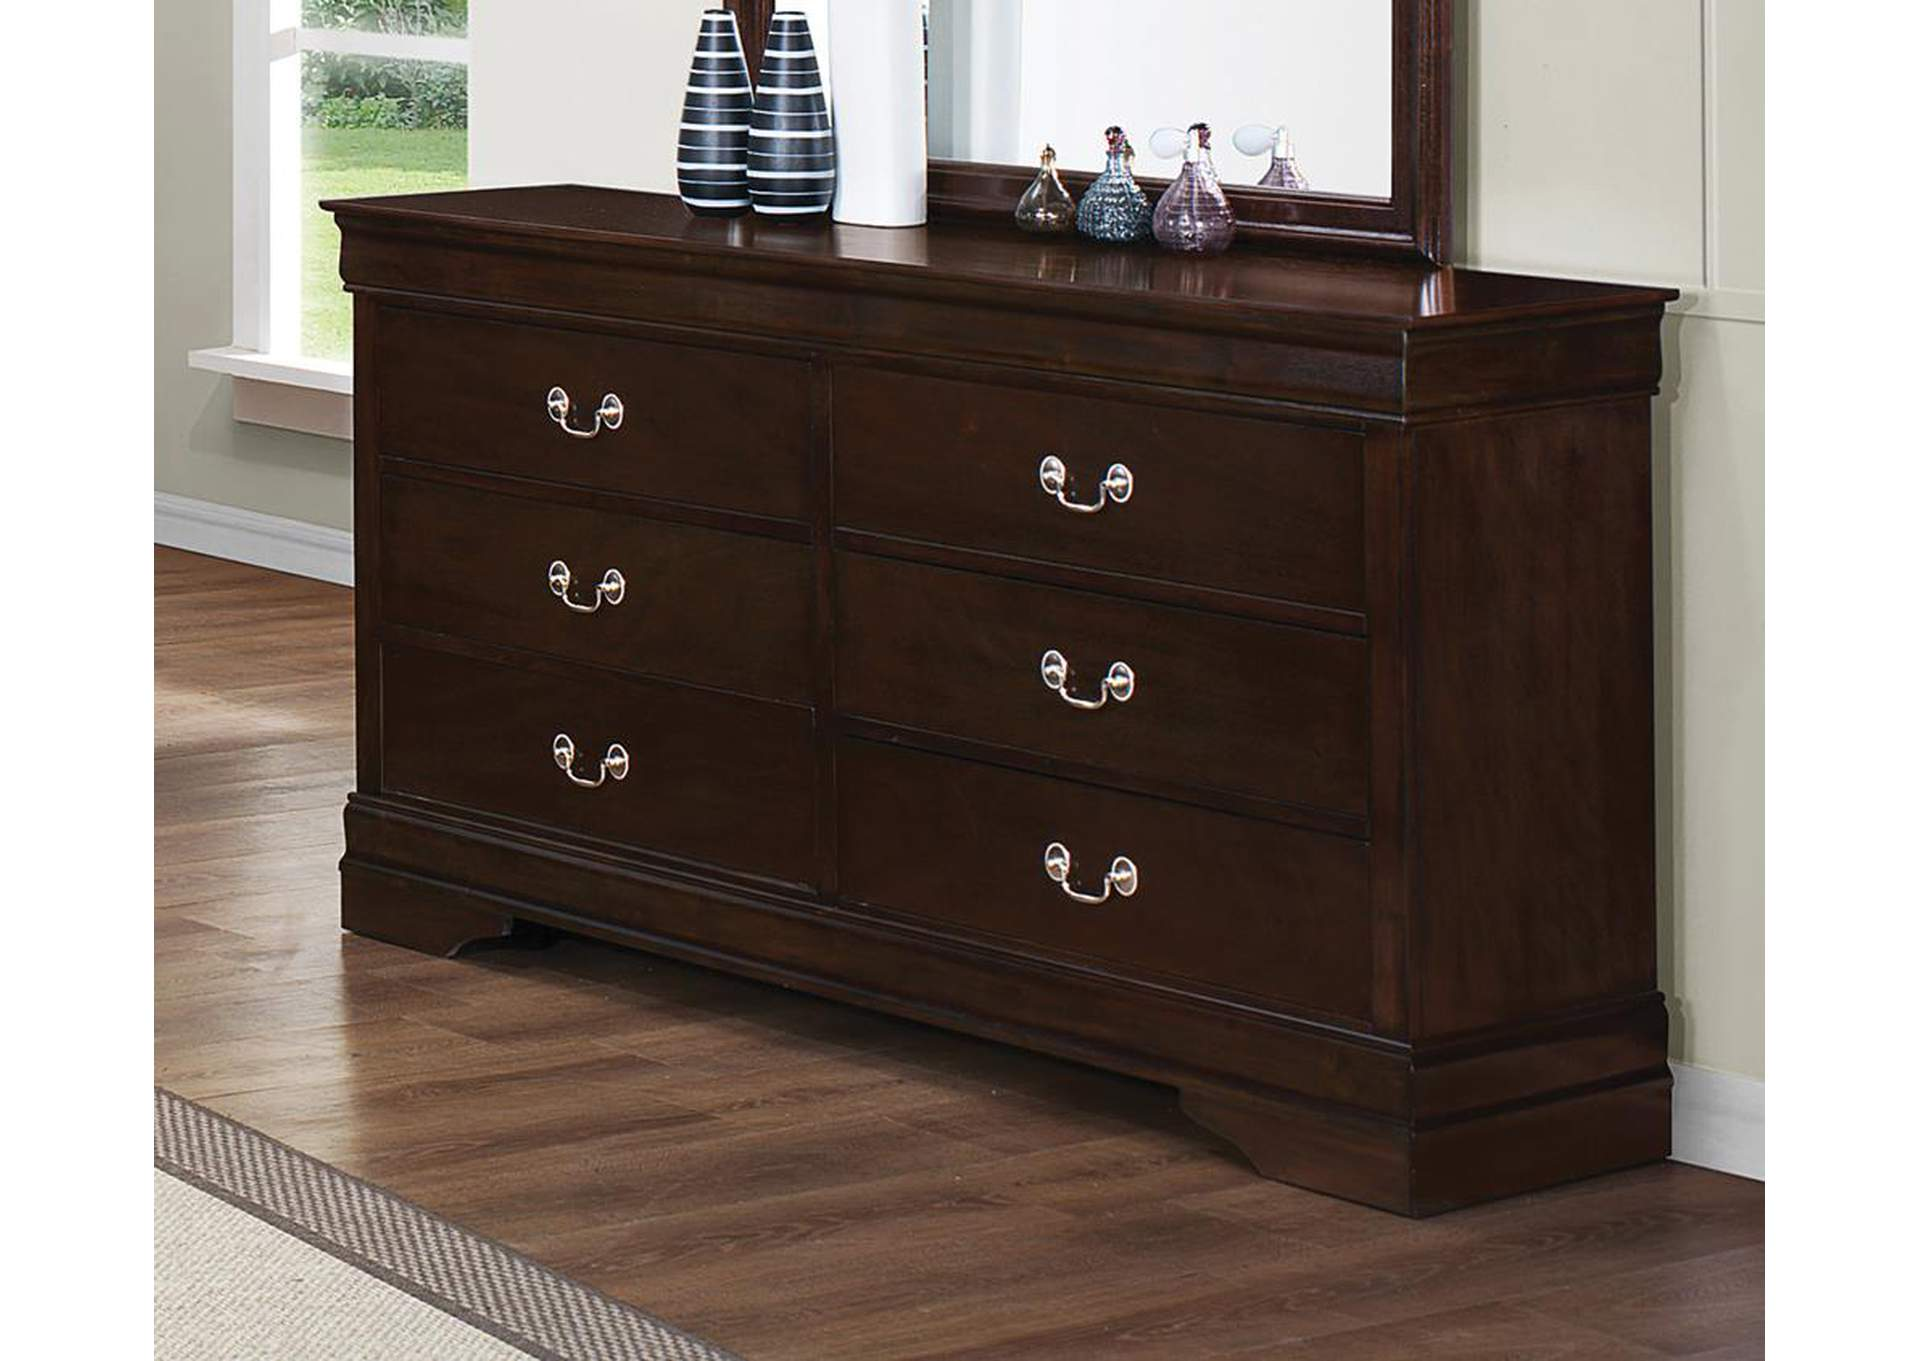 Louis Philippe Cappuccino Dresser,Coaster Furniture